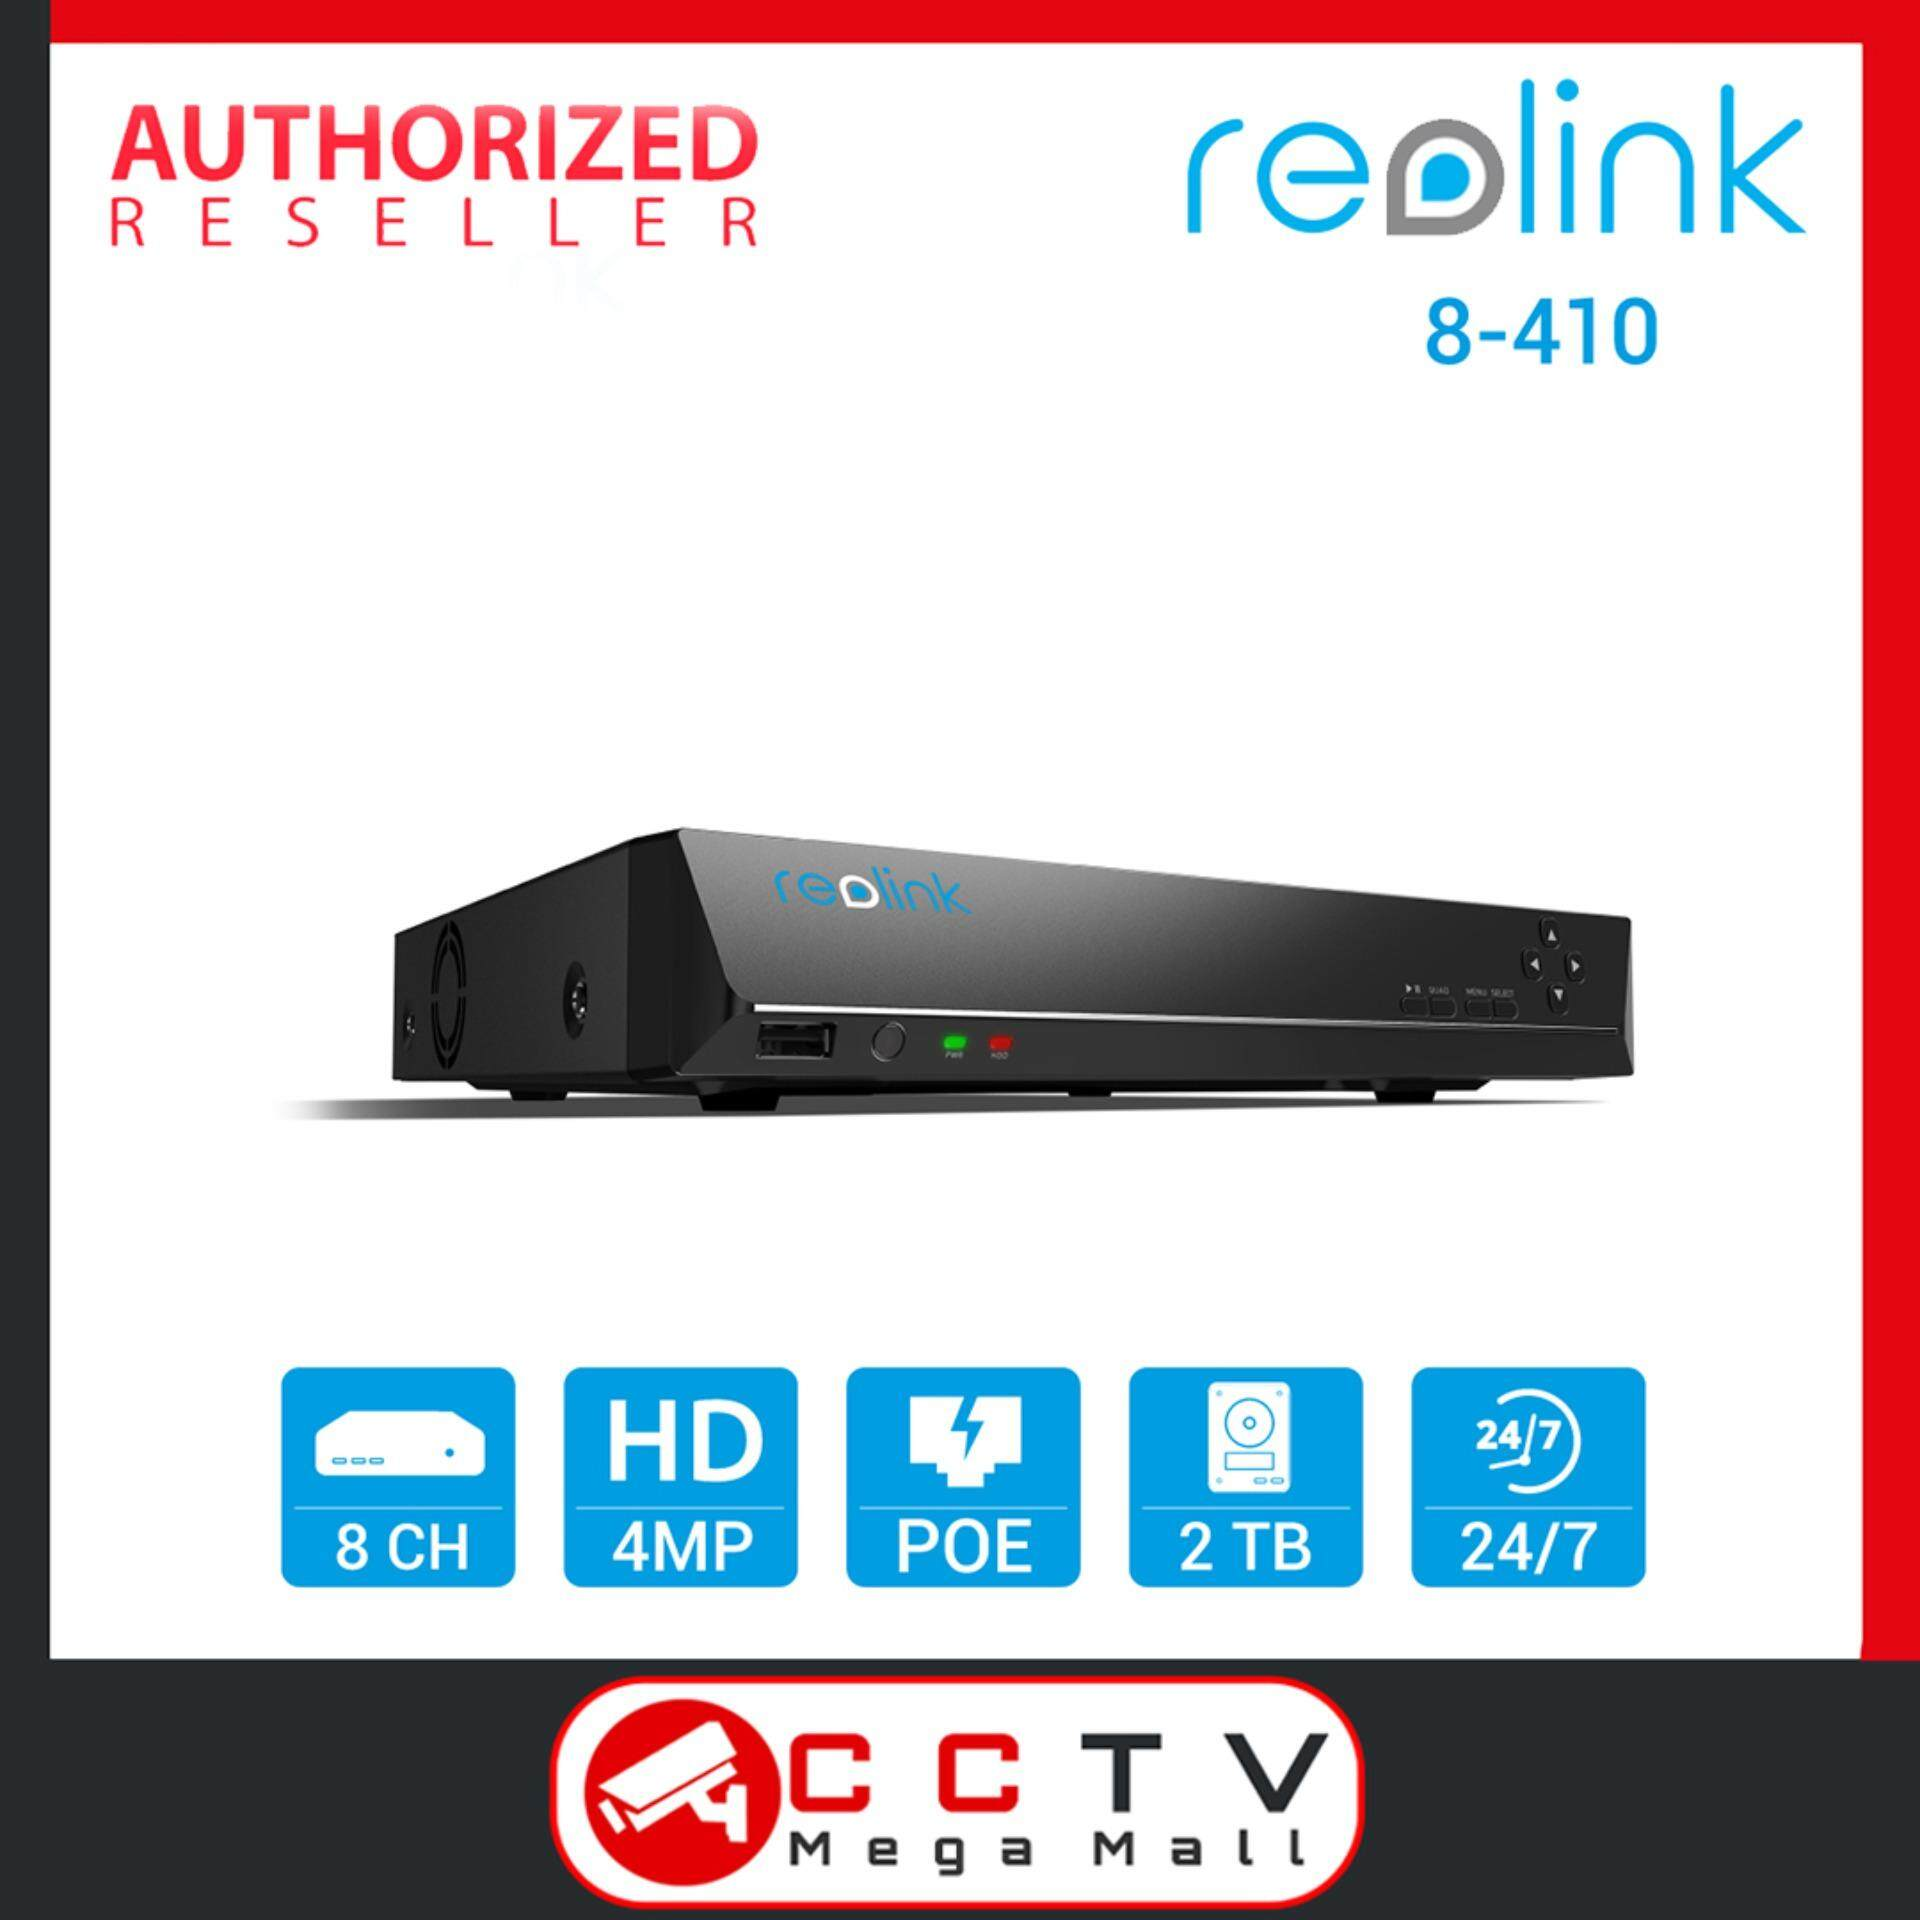 Reolink 8CH 4MP 2560*1440 PoE NVR w 2TB HDD ONLY for Reolink HD 1440P PoE  IP Cameras RLN8-410 - [ CCTV MegaMall ]